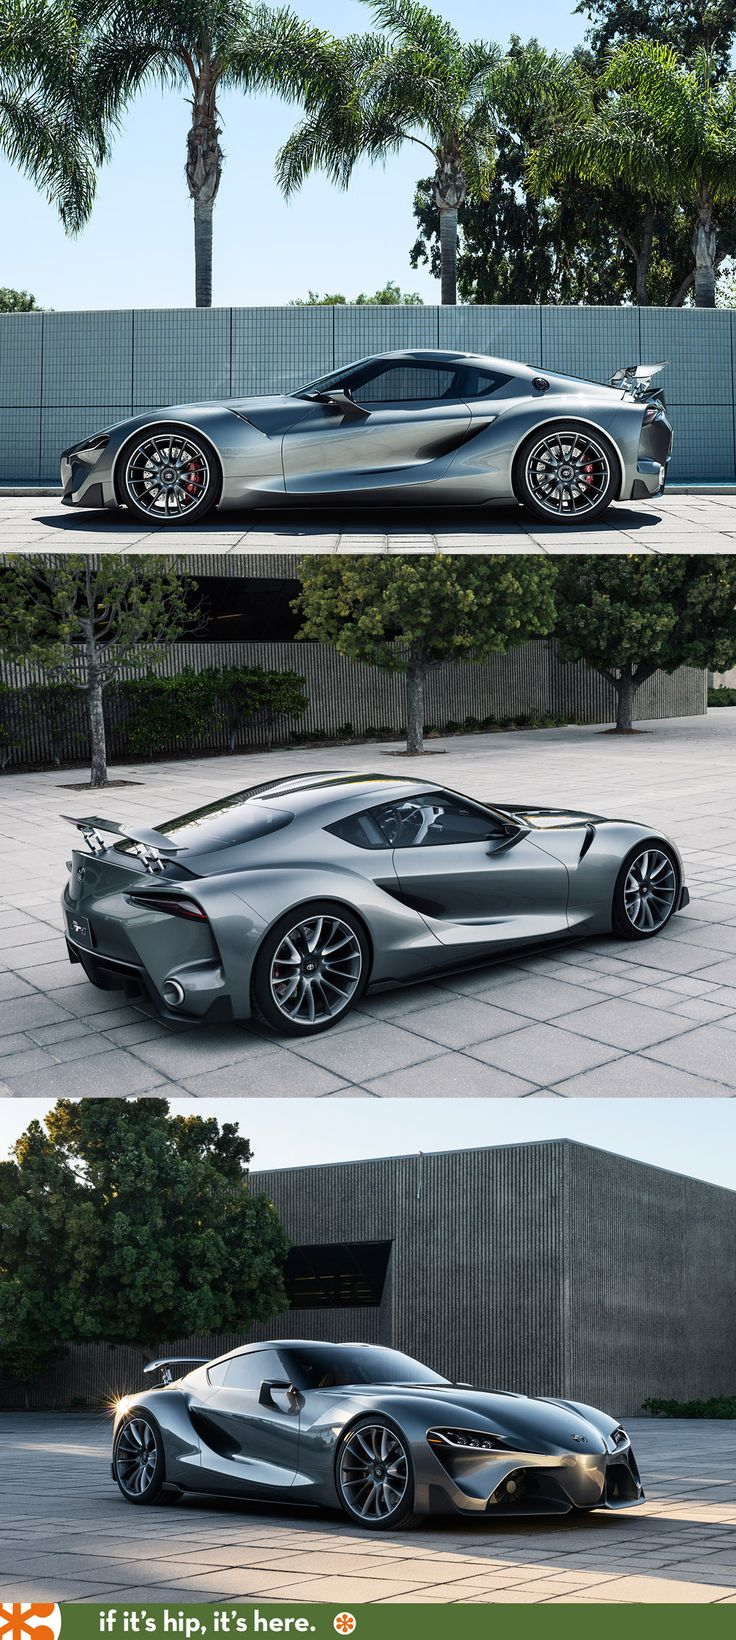 McCall's 2014 Toyota FT1 concept car  | Whether you're interested in restoring an old classic car or you just need to get your family's reliable transportation looking good after an accident, B